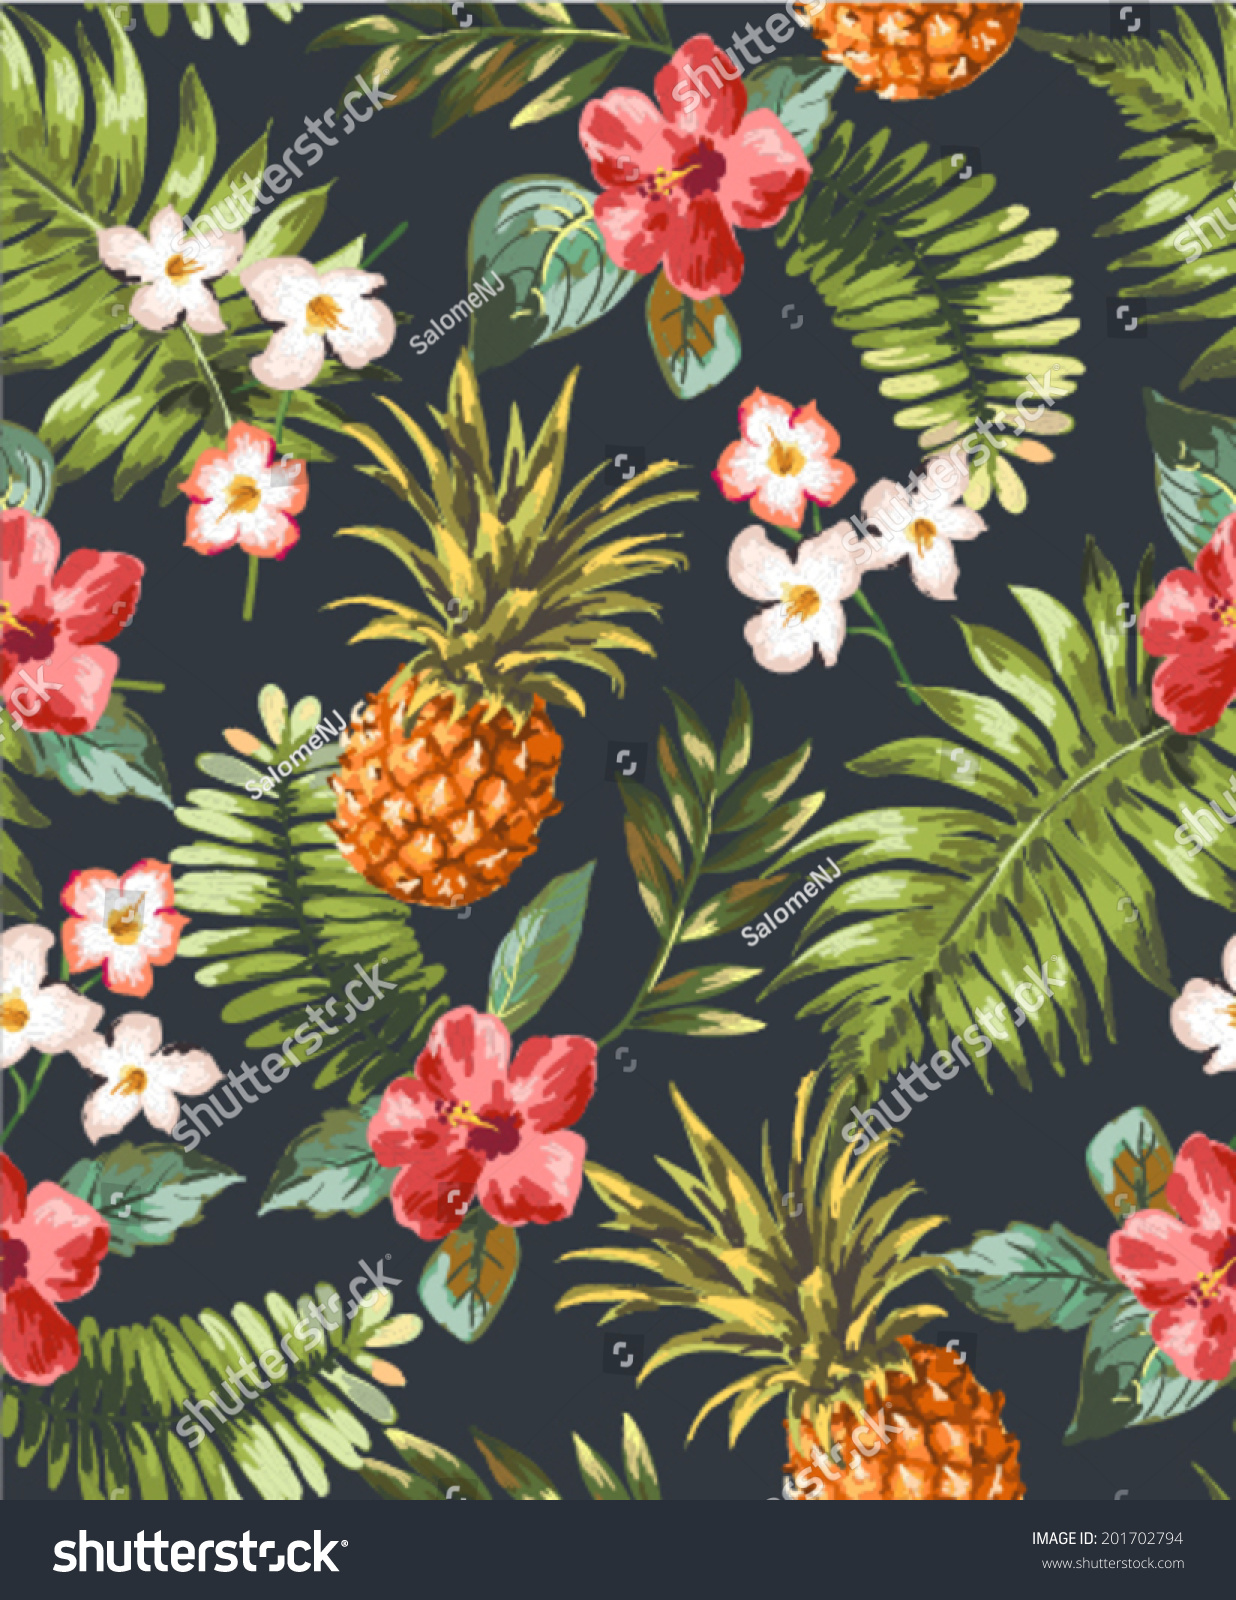 Retro Vintage Hawaiian DressesTropical Print Dresses